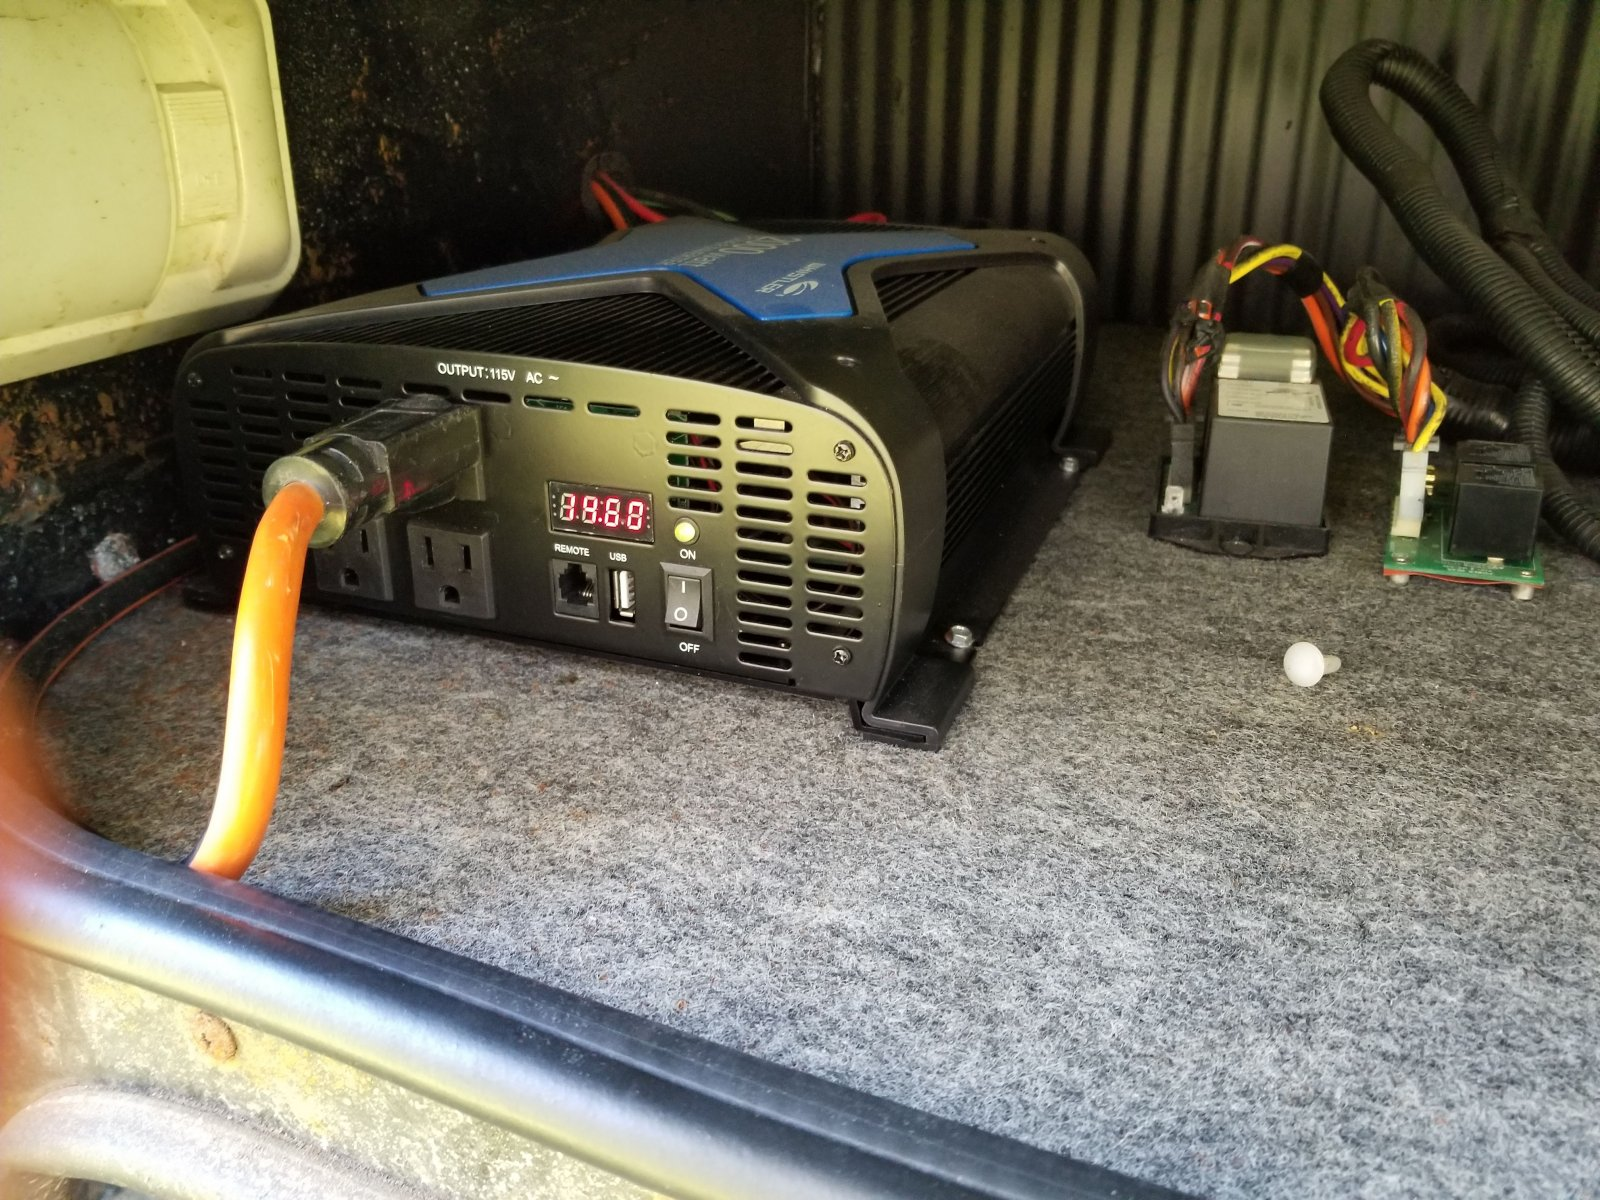 Click image for larger version  Name:Front of inverter.jpg Views:24 Size:406.1 KB ID:206753